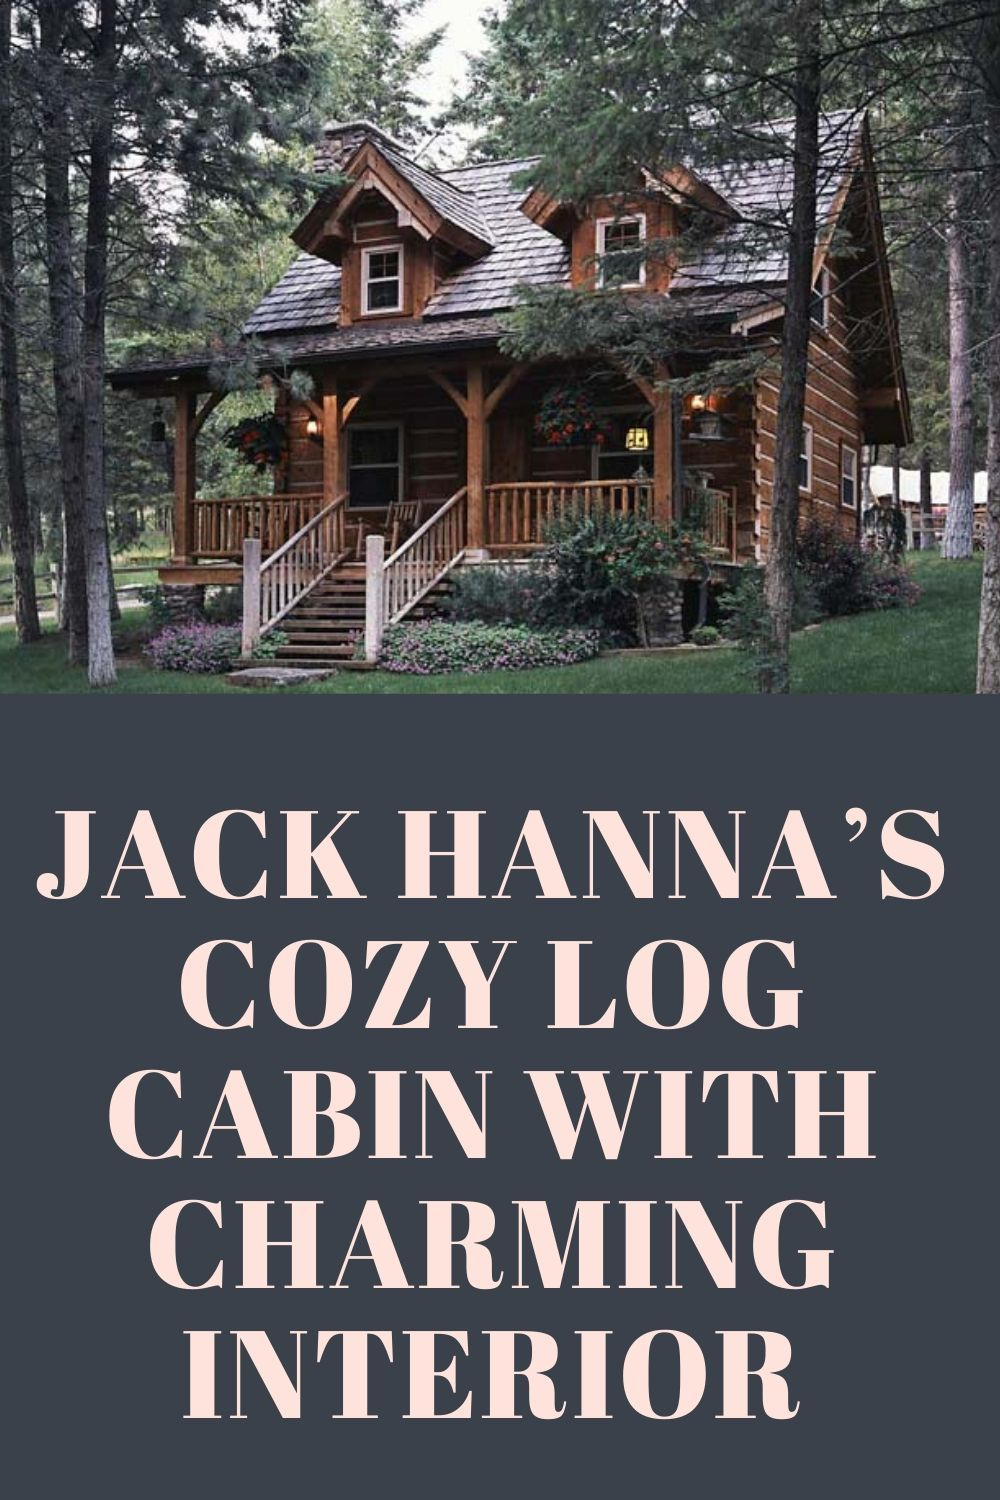 Jack Hanna's Cozy Log Cabin With Charming Interior | Cabin ...